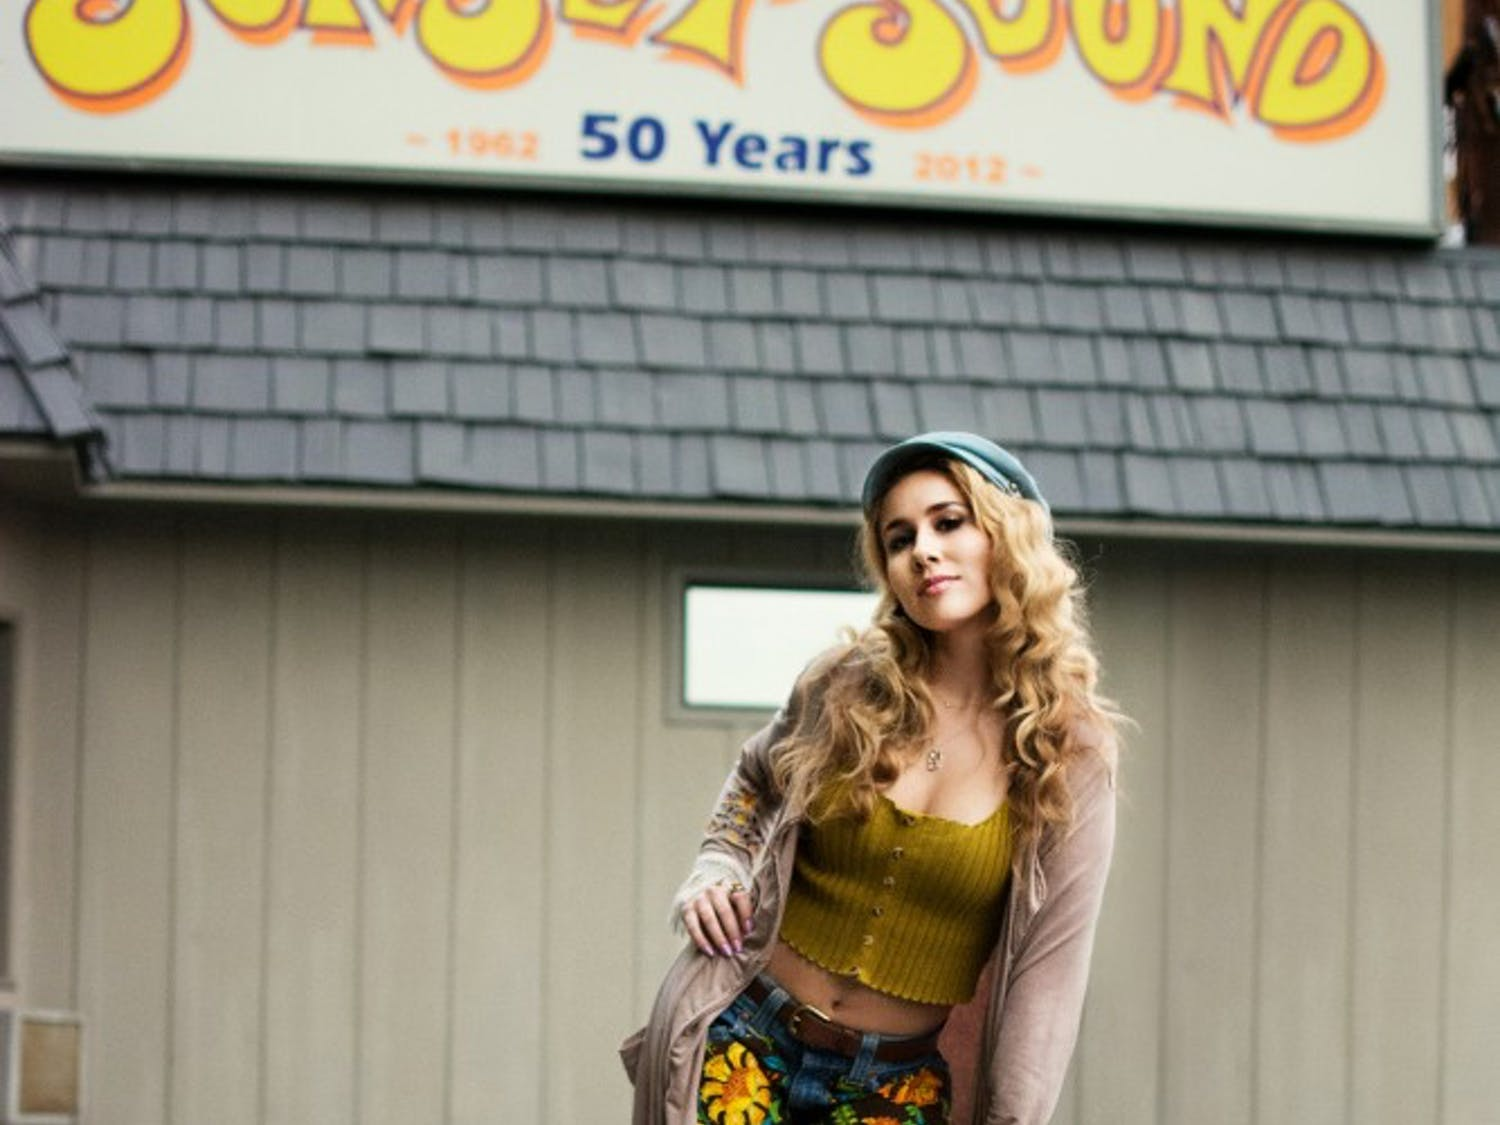 """Singer-songwriter Haley Reinhart released her third studio album, """"What's That Sound?"""" on Sept. 22 and is currently on her tour of the same name. Reinhart talked to The Spectrum about the recent release, touring the world, and having Anderson .Paak in her first band."""